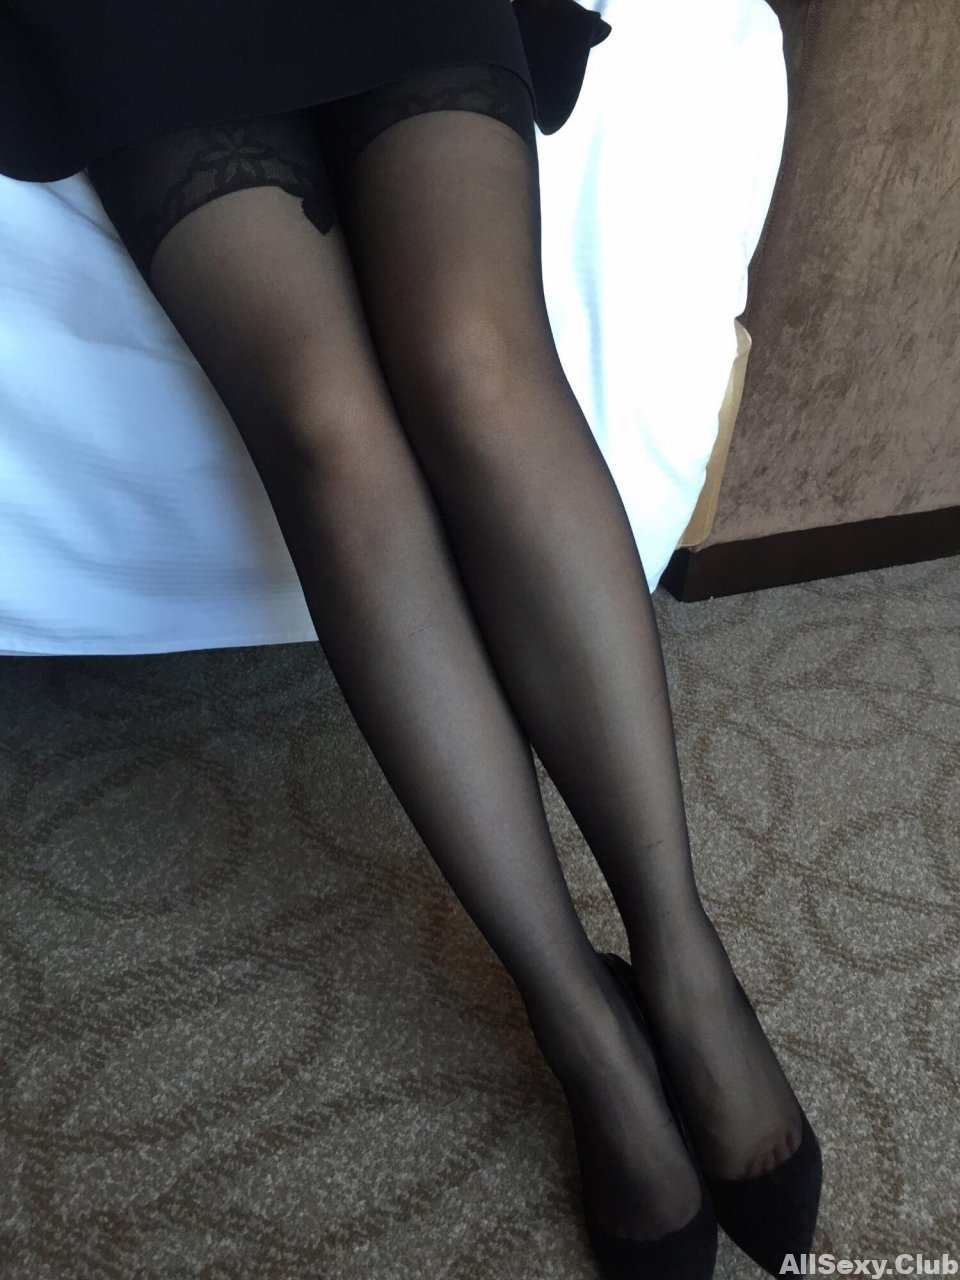 Sexy legs in black stockings